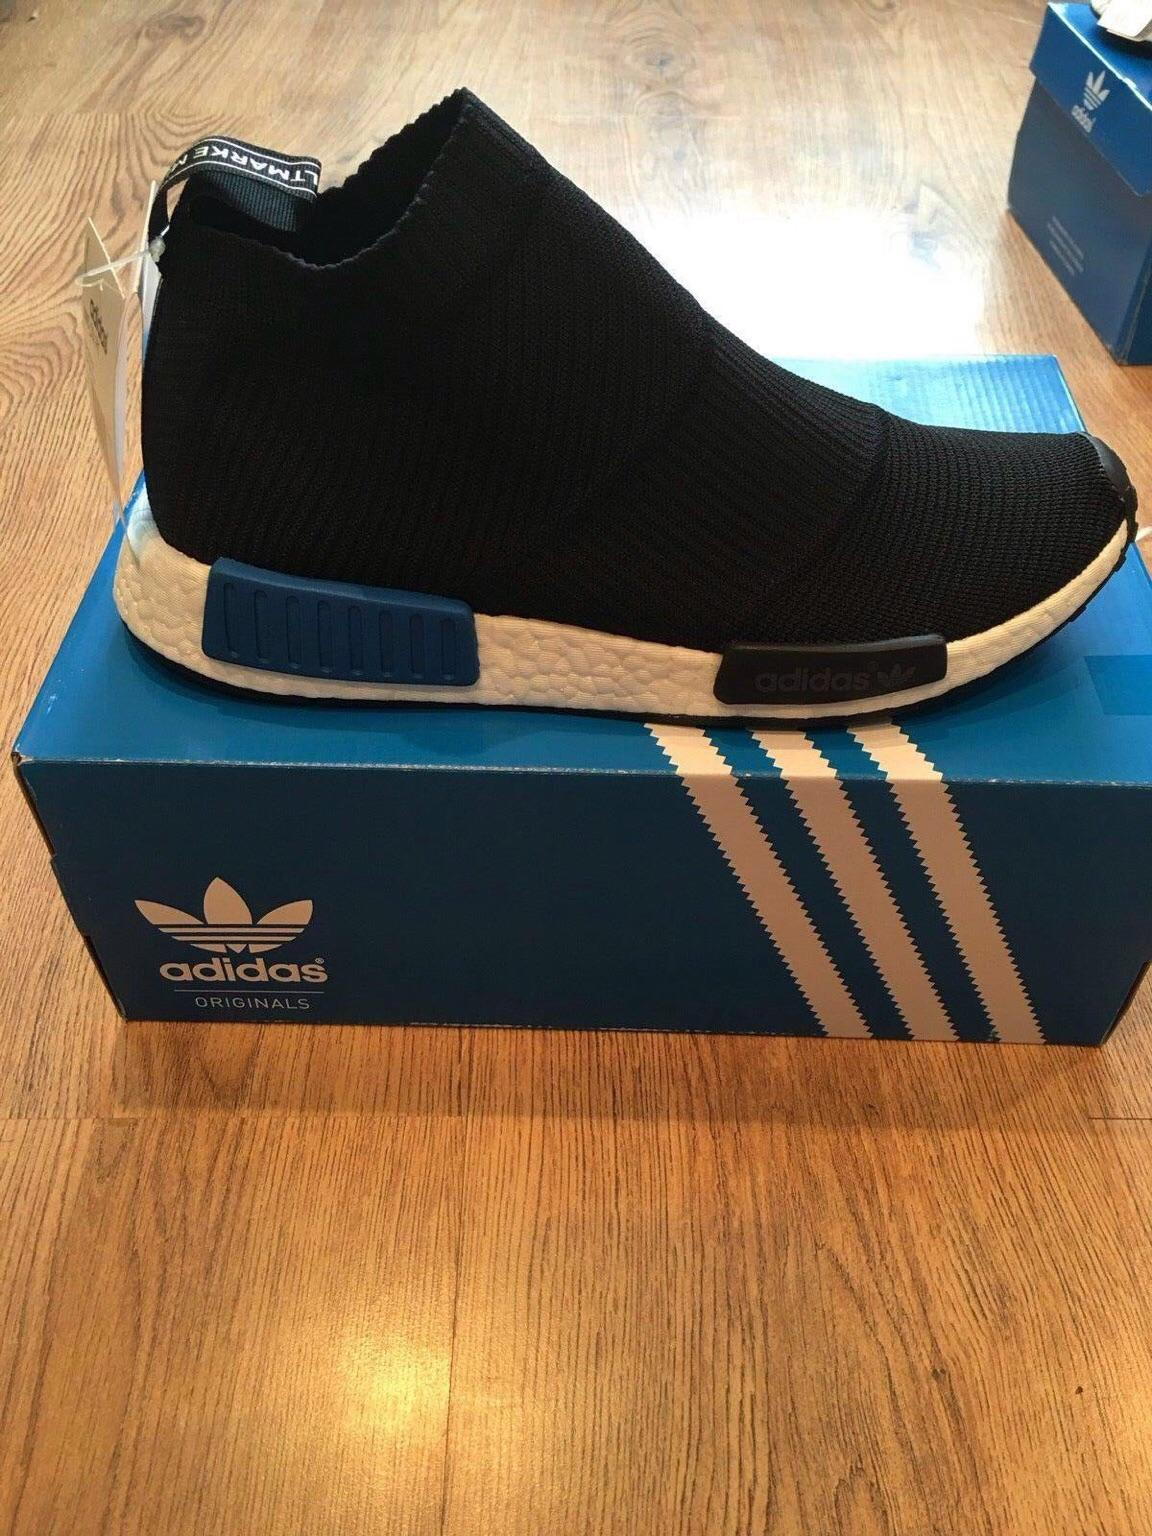 Adidas NMD Sock in 24943 Flensburg for ?140.00 for sale Shpock